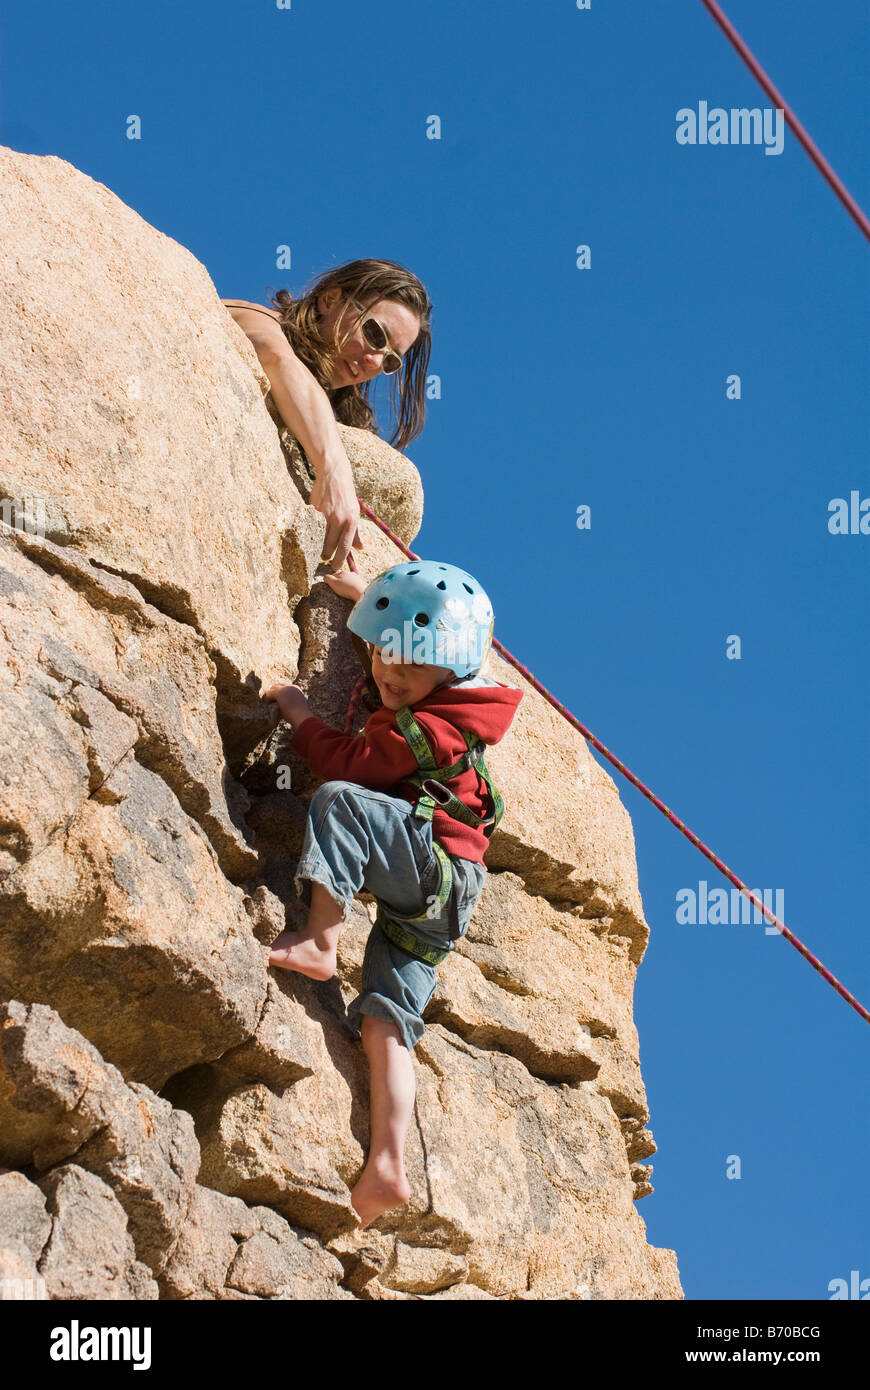 Mother helping child finish a rock climb, Joshua Tree National Park, California. - Stock Image